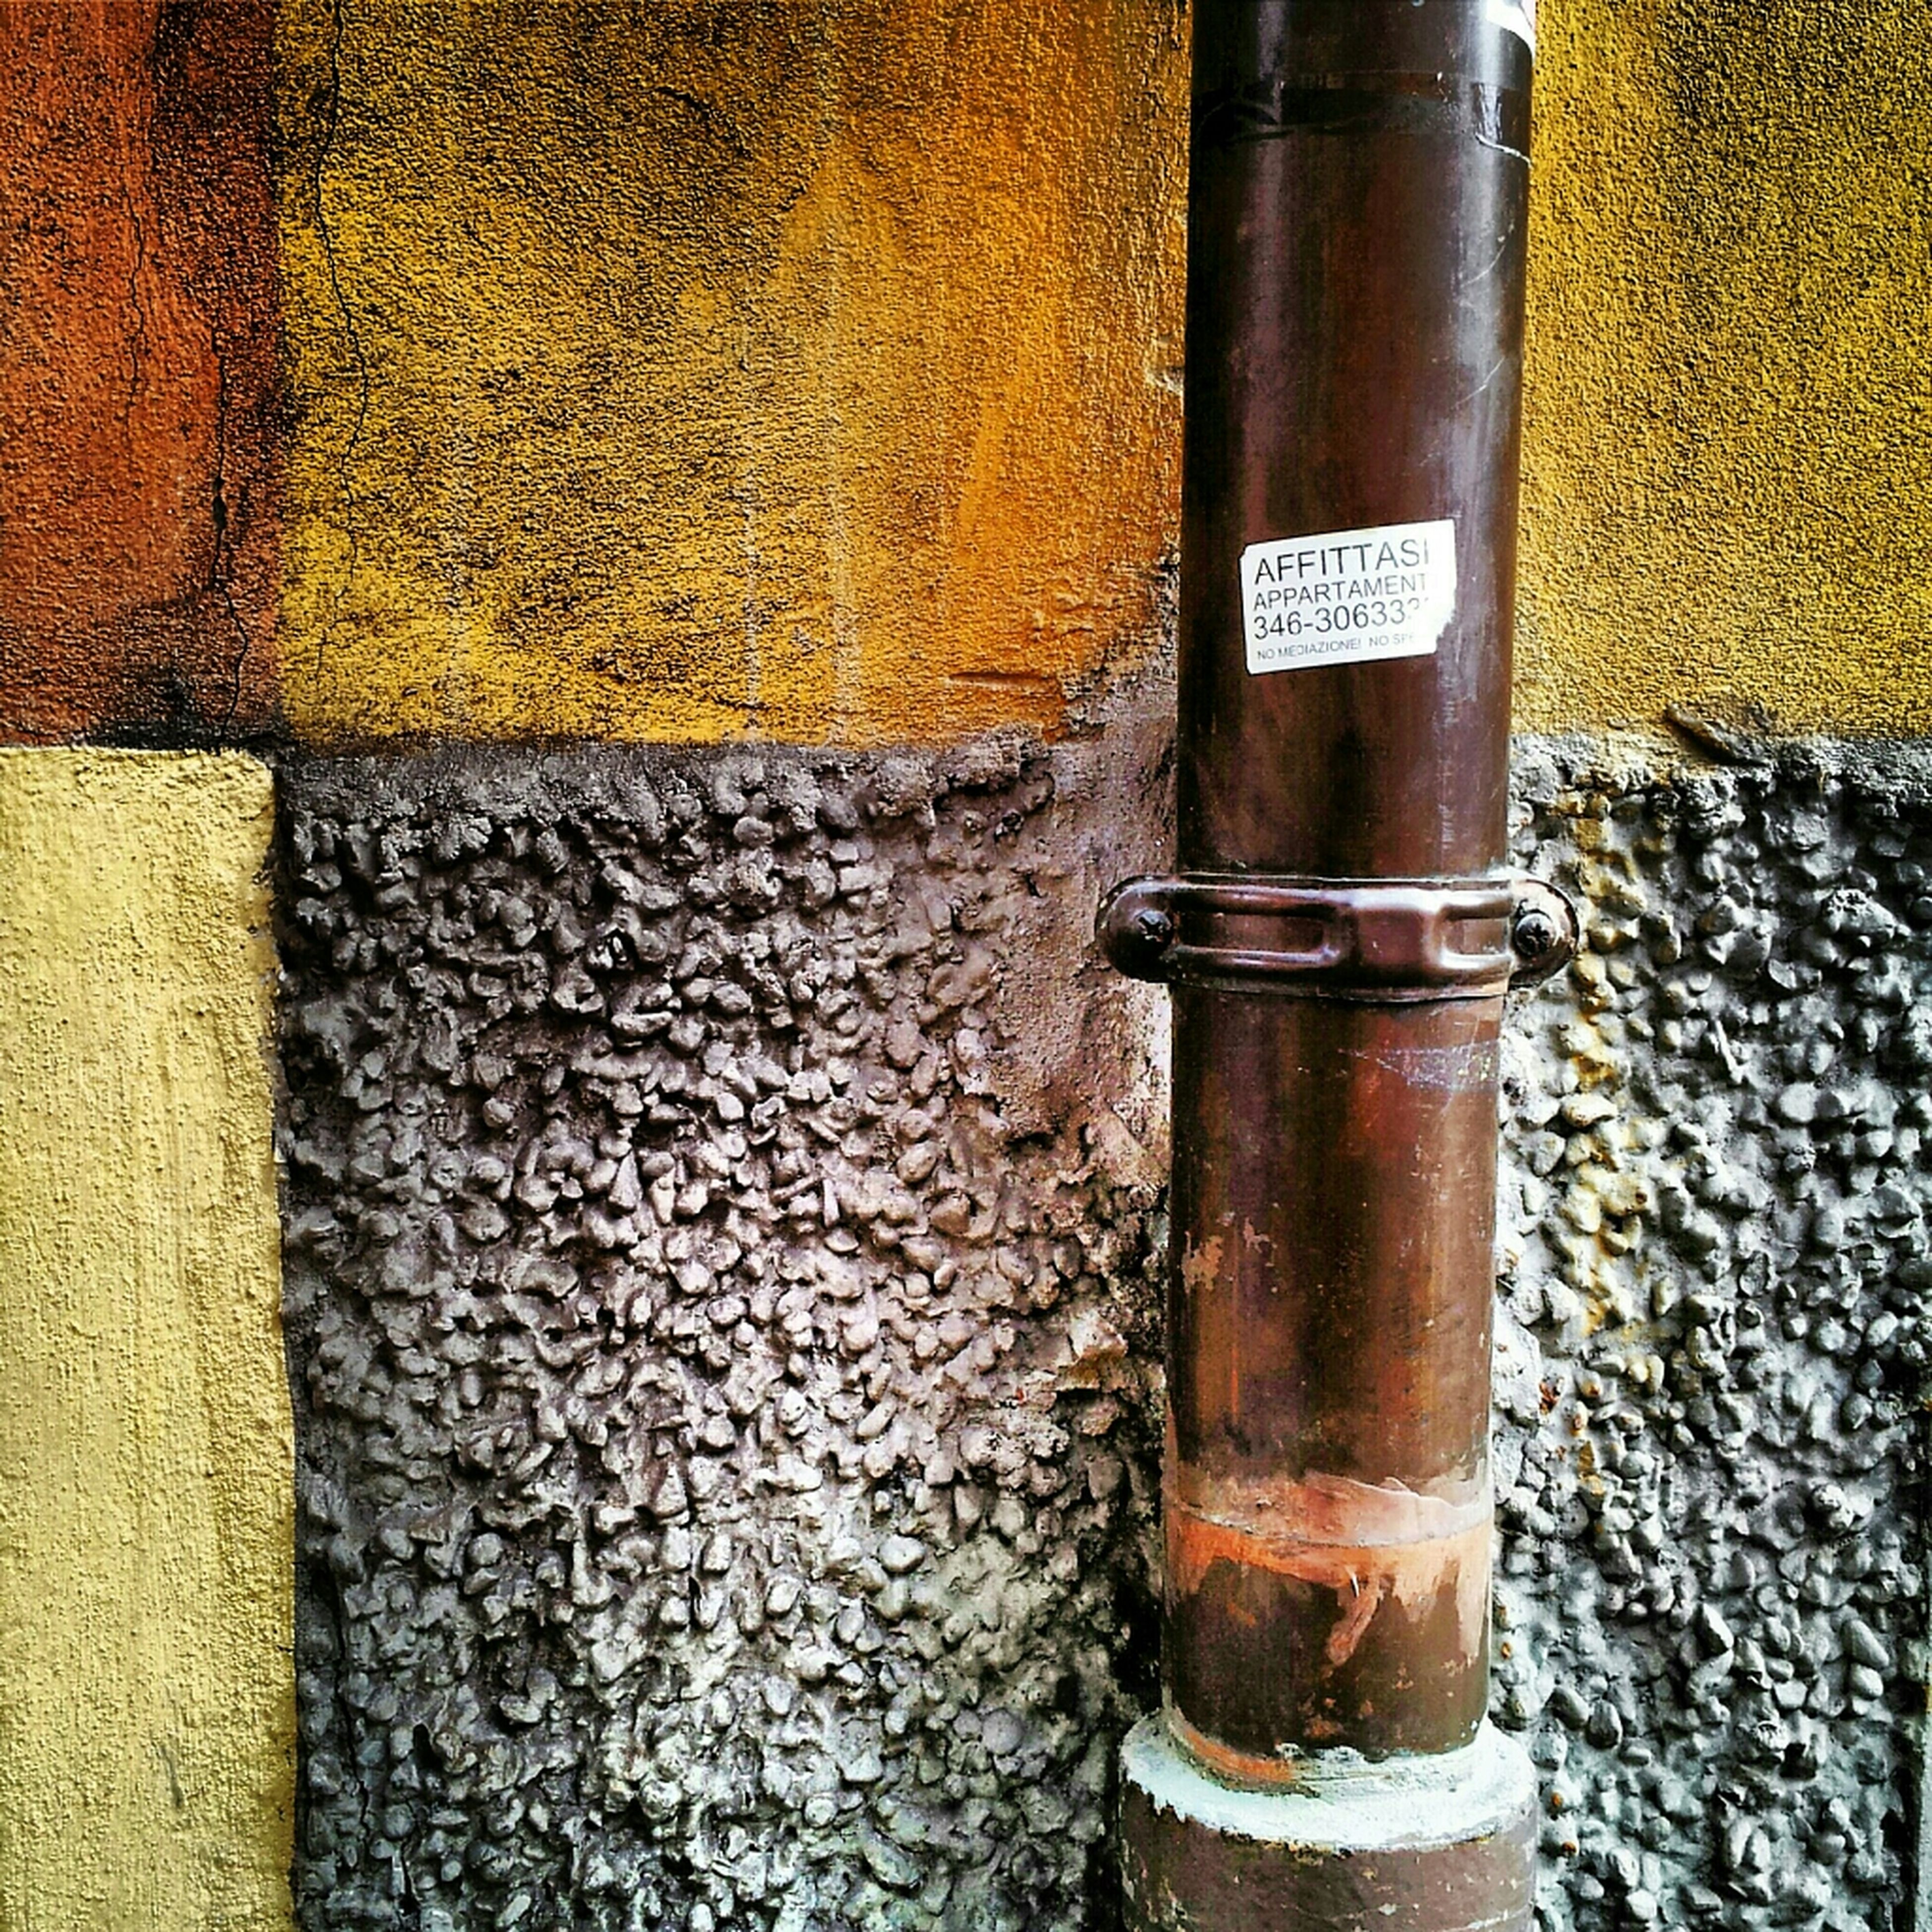 metal, close-up, communication, text, no people, day, yellow, rusty, wall - building feature, outdoors, built structure, metallic, street, western script, architecture, sidewalk, building exterior, old, protection, high angle view